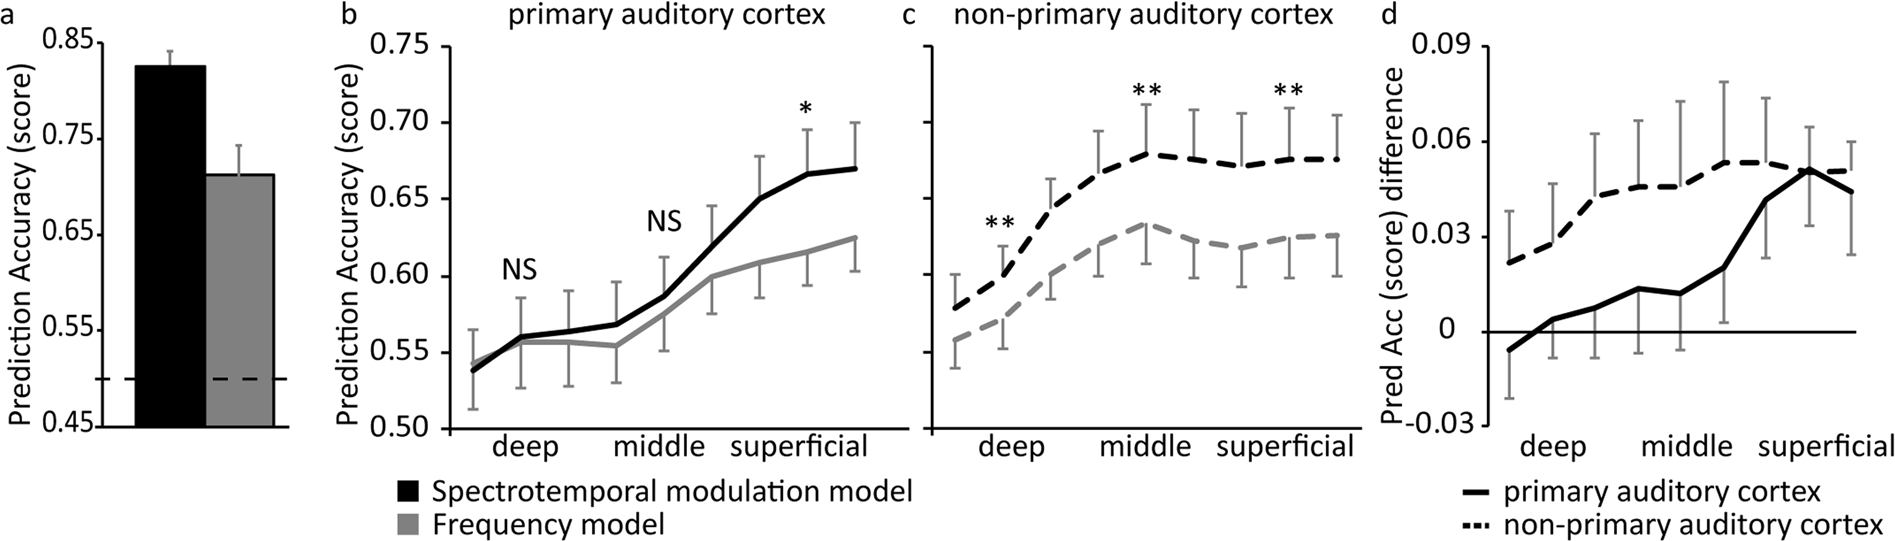 Processing complexity increases in superficial layers of human